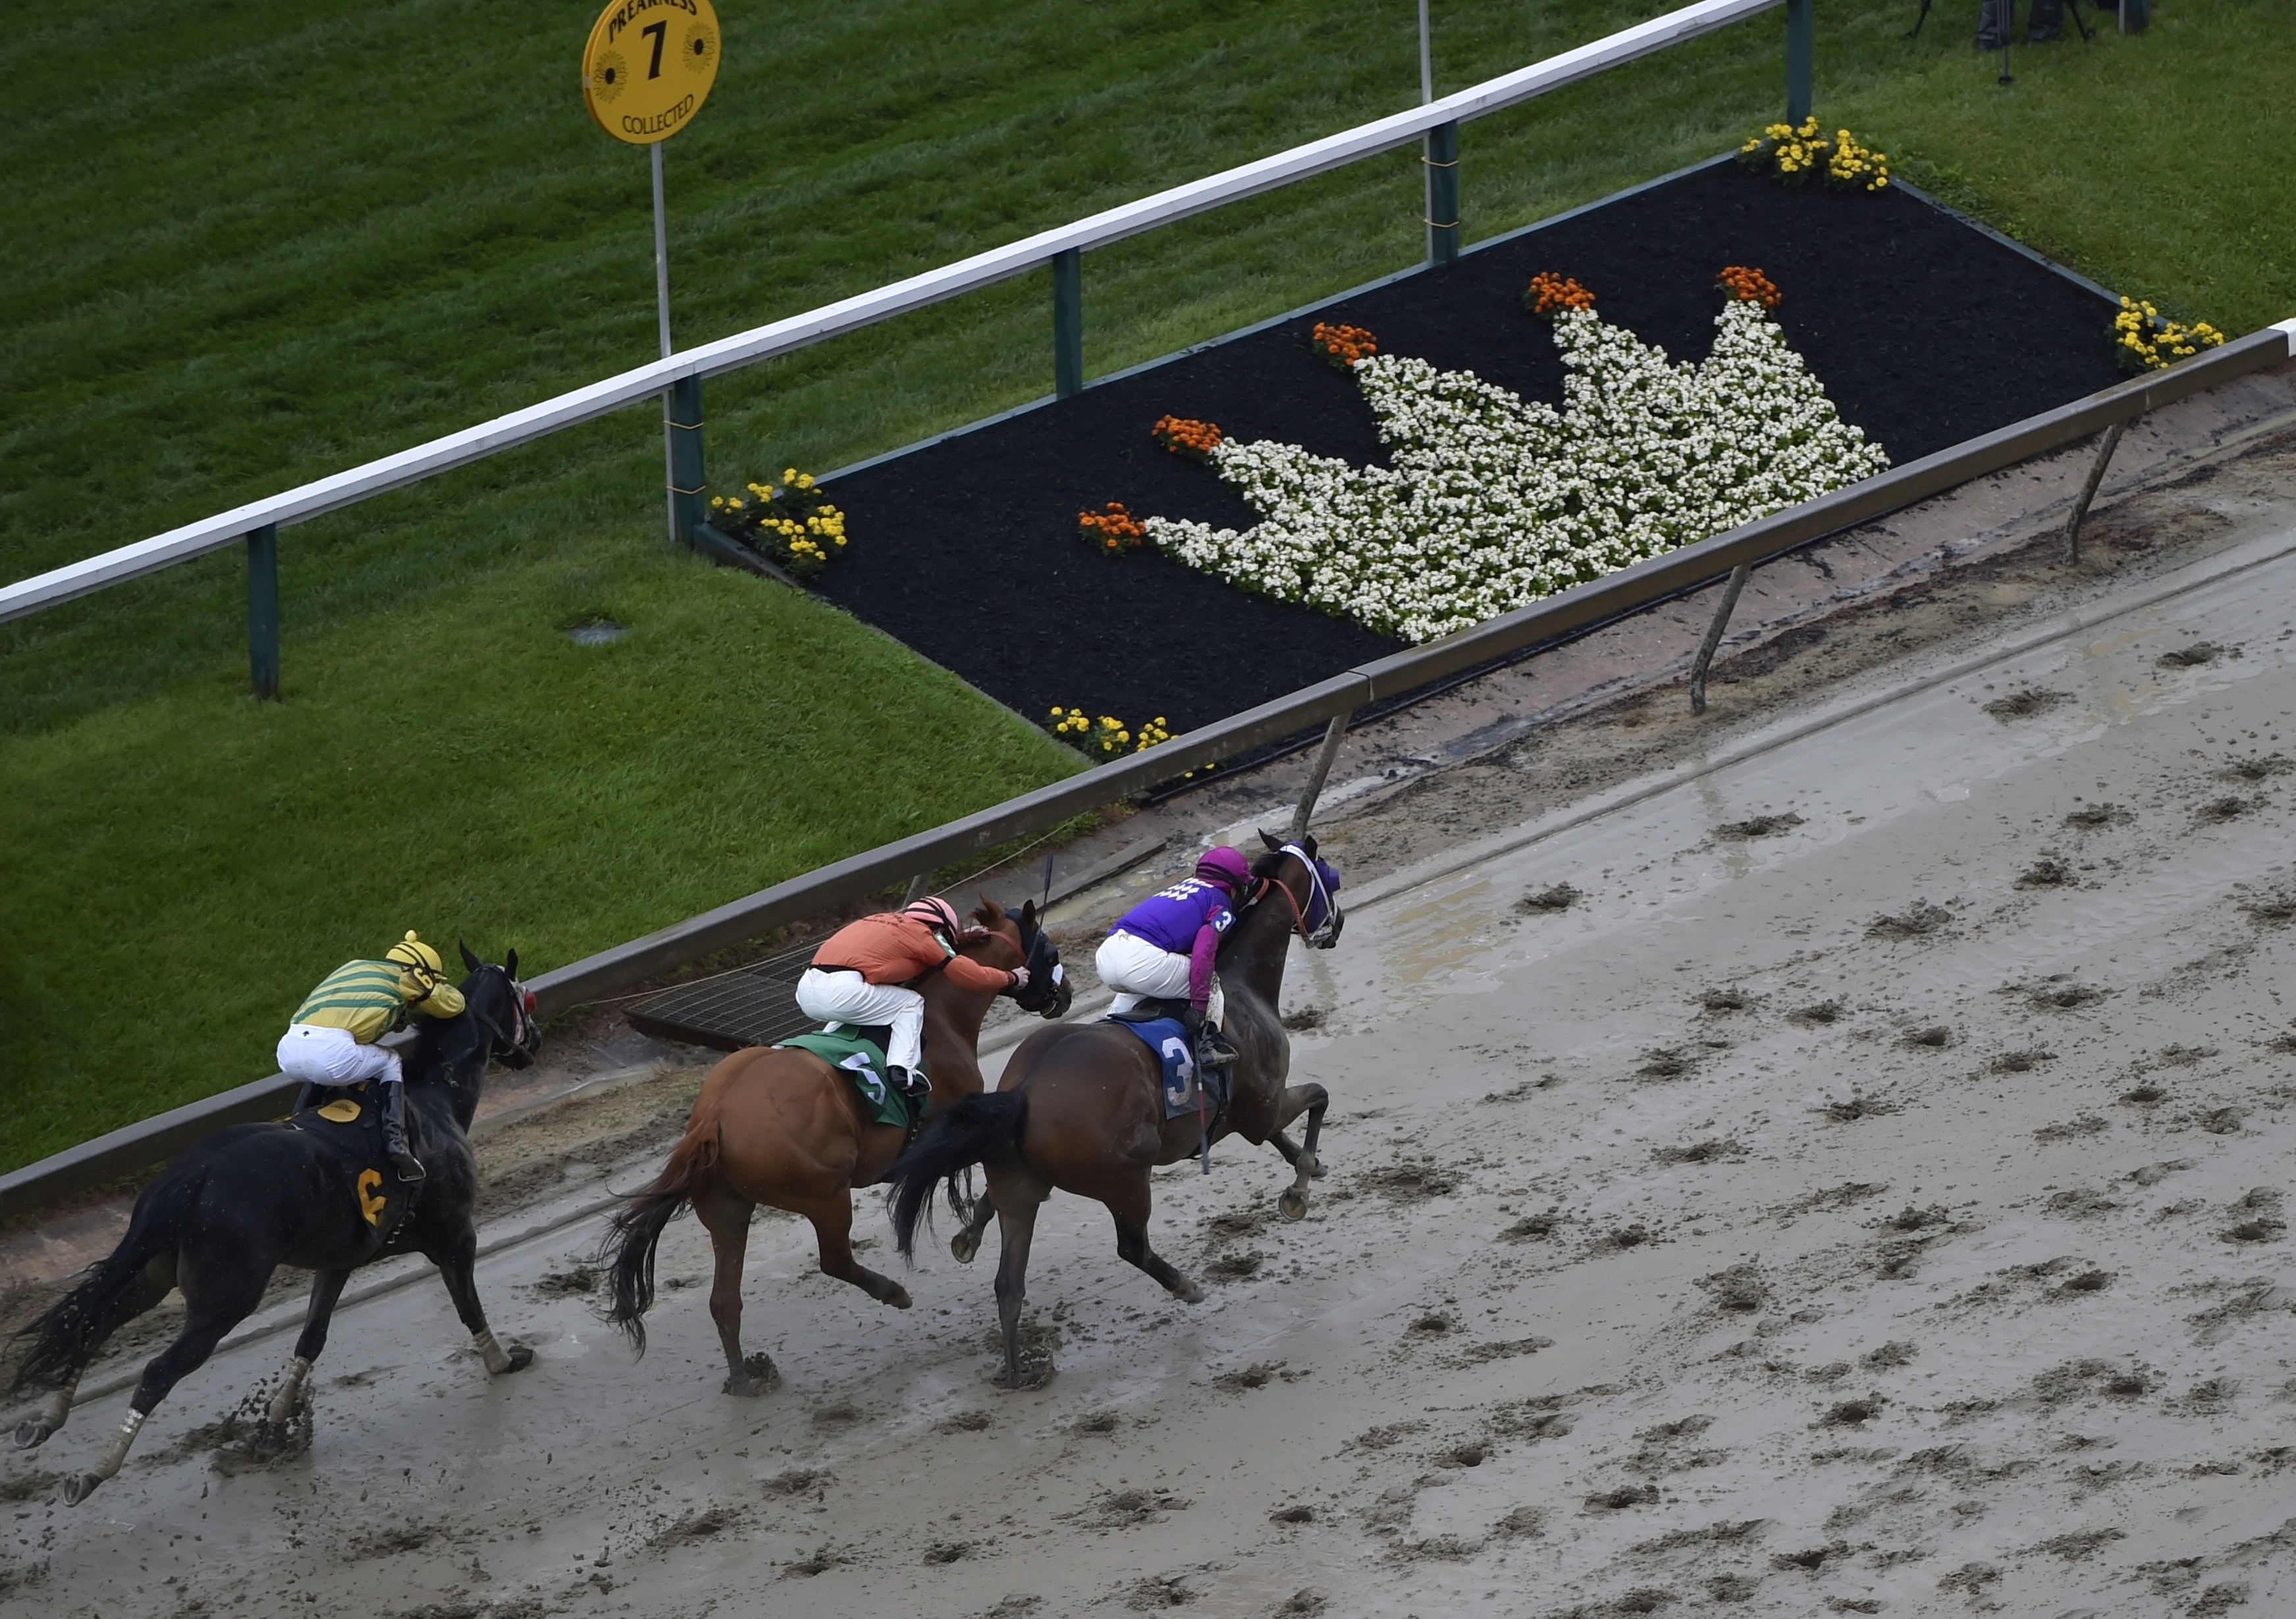 Homeboykris (3), ridden by Horacio Karamanos, head to the finish to win the first race of the day on a muddy track ahead of the 141st Preakness Stakes horse race at Pimlico Race Course, Saturday, May 21, 2016, in Baltimore. (AP Photo/Mike Stewart)